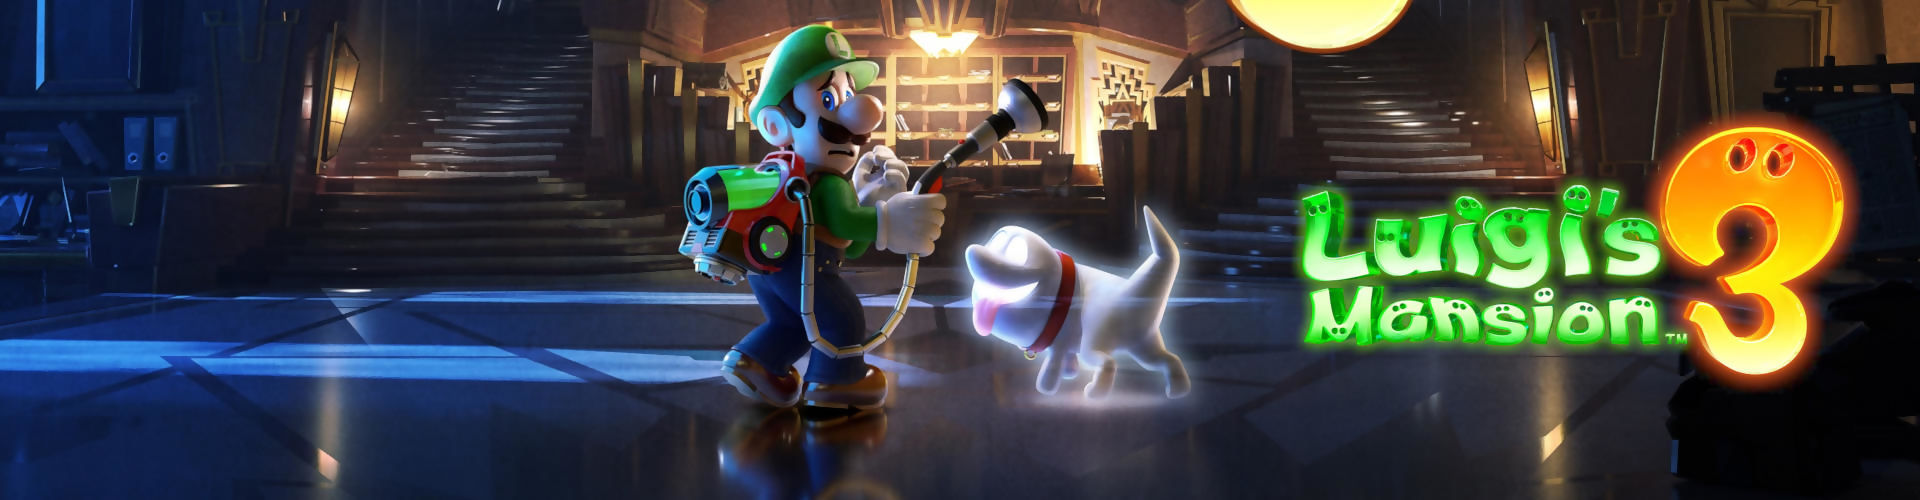 Luigi's Mansion 3 reviews are here